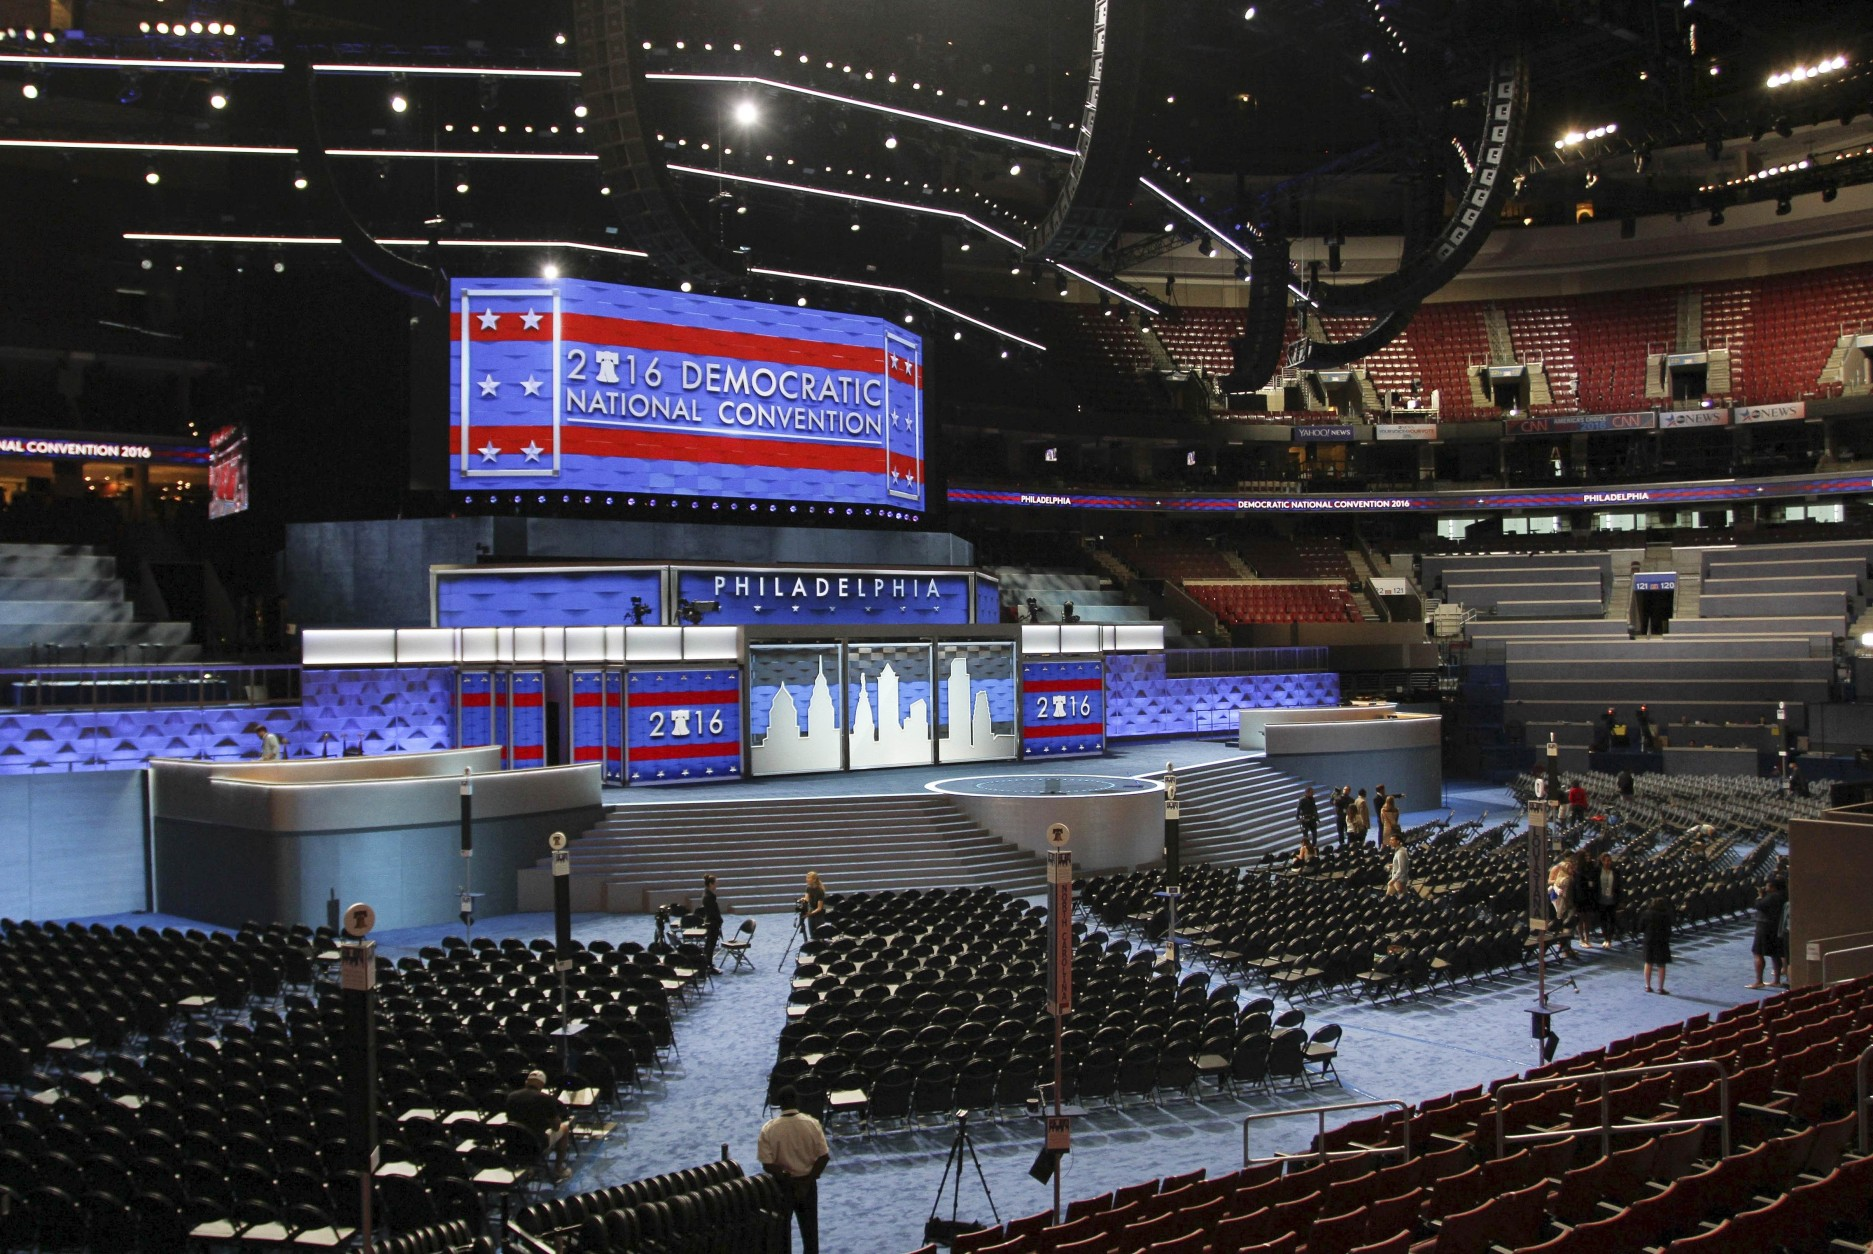 The stage stands ready for the start of the Democratic National Convention at the Wells Fargo Center, Friday, July 22, 2016 in Philadelphia. The convention is scheduled to convene on Monday. (AP Photo/Dake Kang)